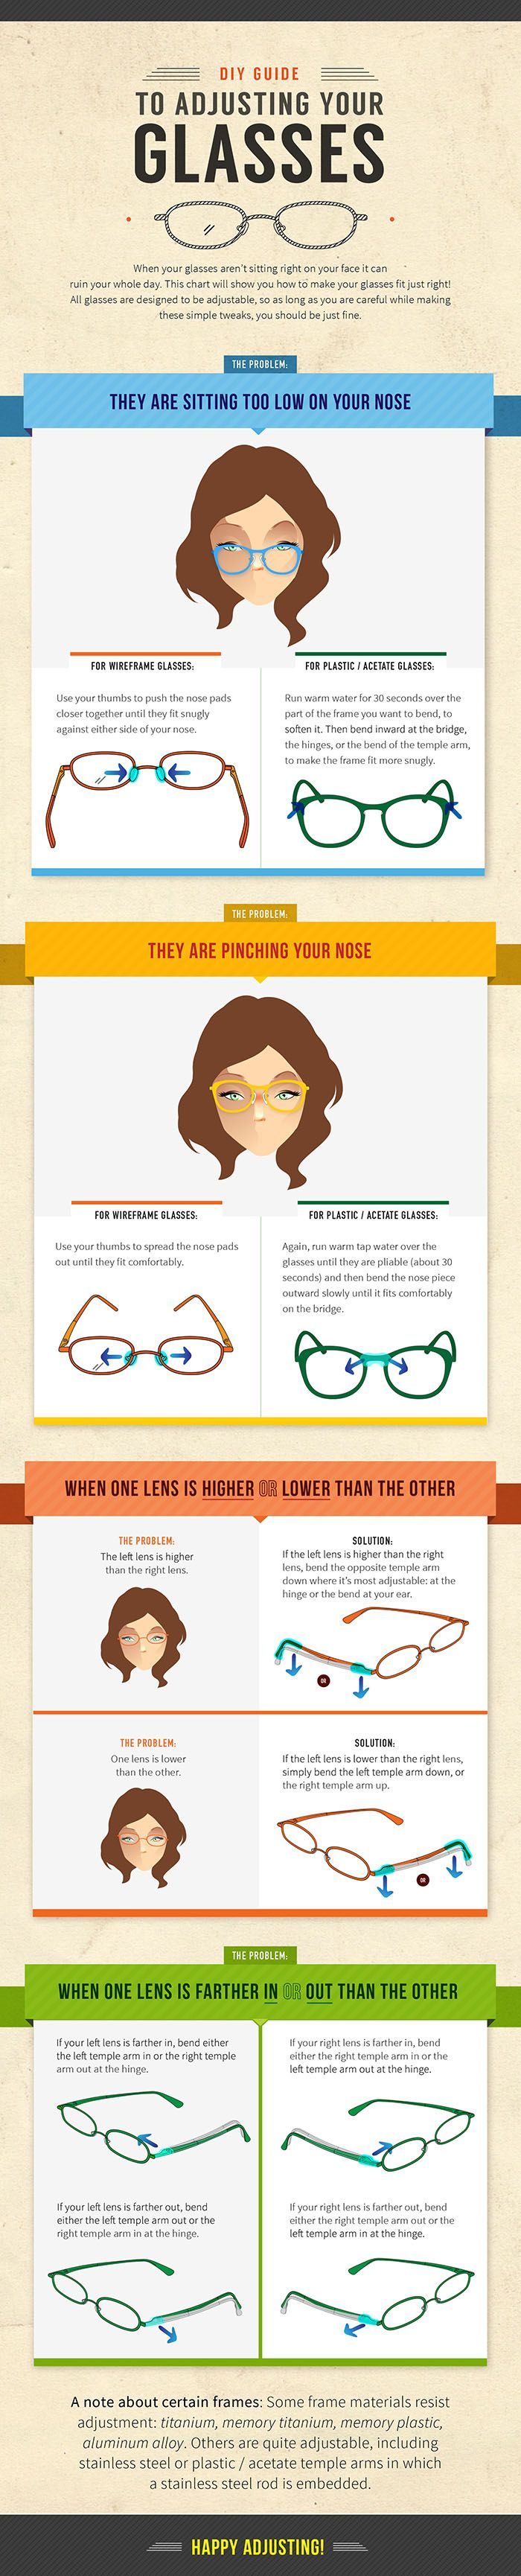 How to adjust your glasses - Zenni Optical Infographic | Home ...